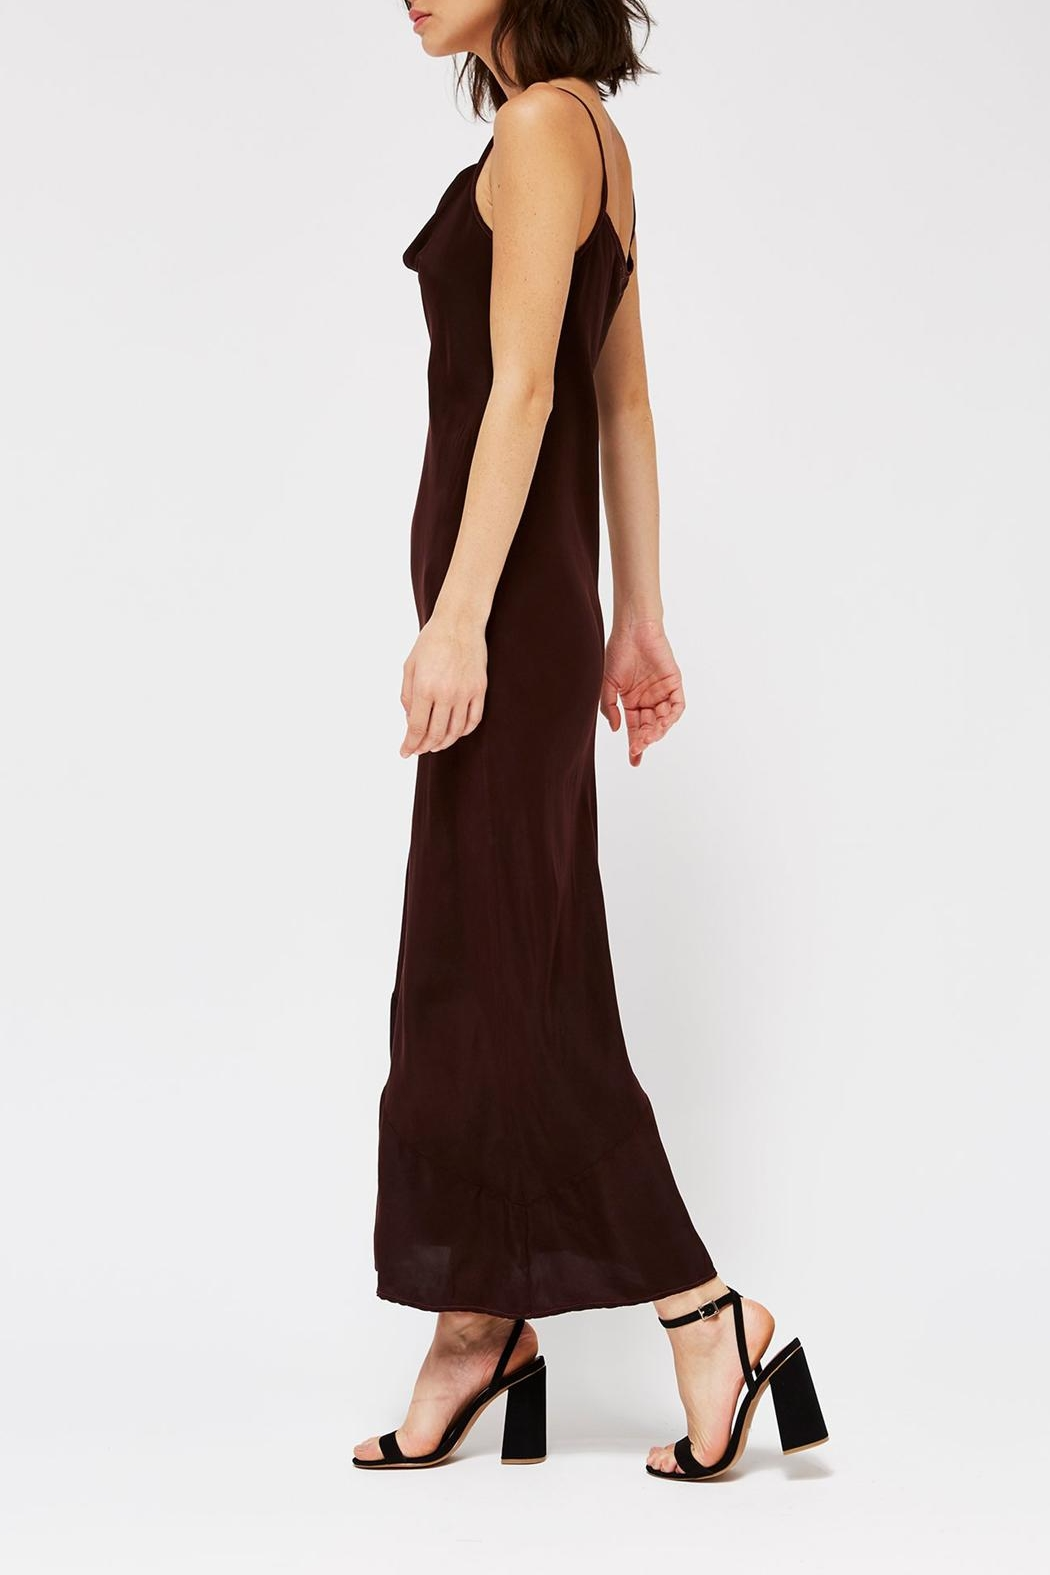 LACAUSA Bias Slip Dress - Front Full Image